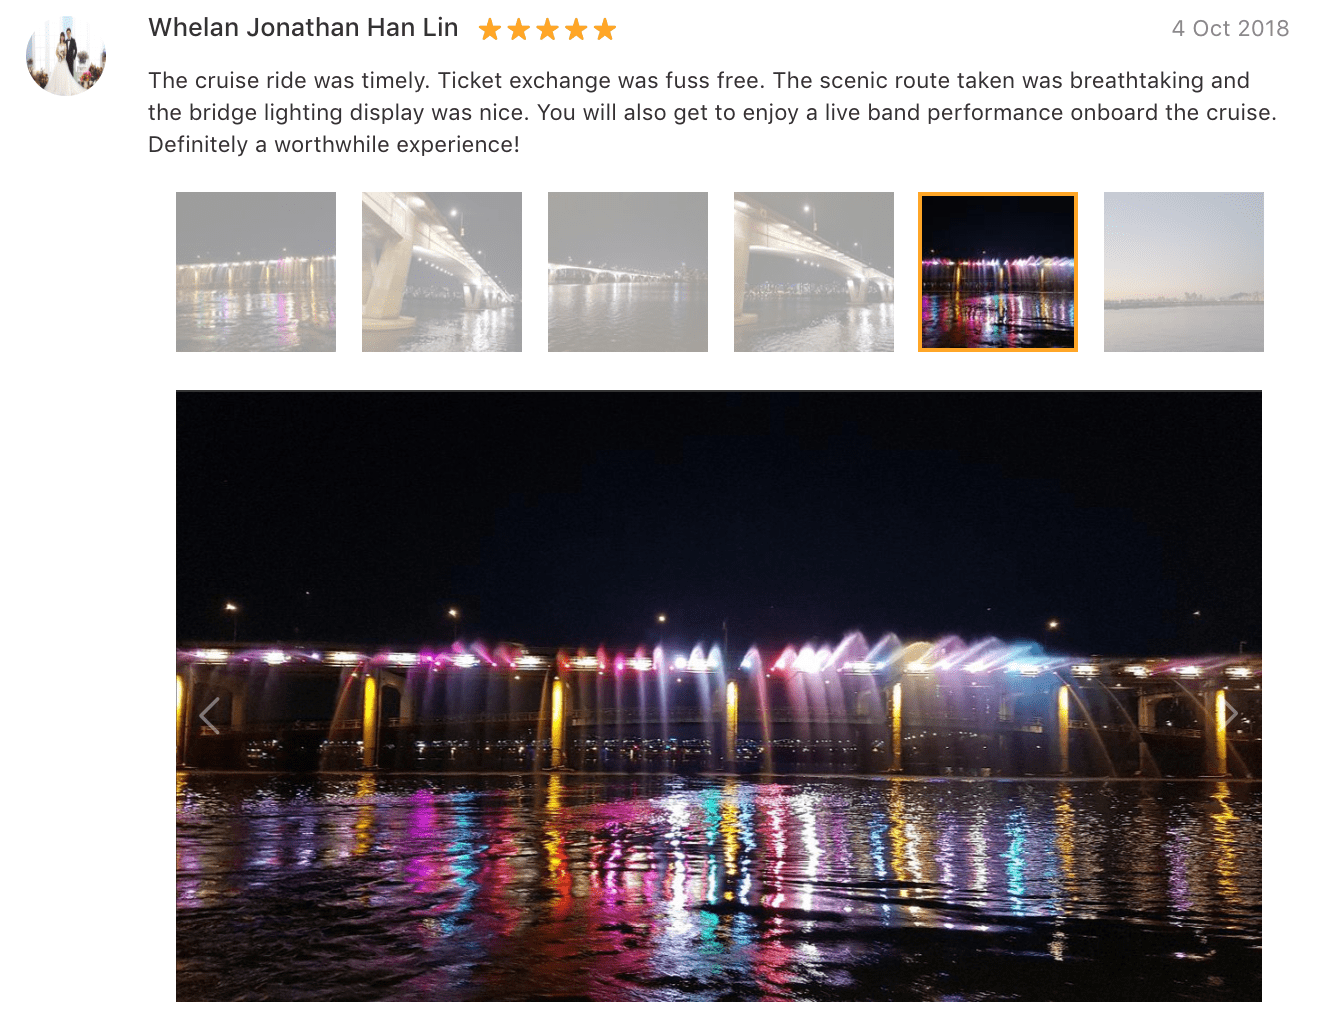 'The cruise ride was timely. Ticket exchange was fuss free. The scenic route taken was breathtaking and the bridge lighting display was nice. You will also get to enjoy a live band performance onboard the cruise. Definitely a worthwhile experience! -